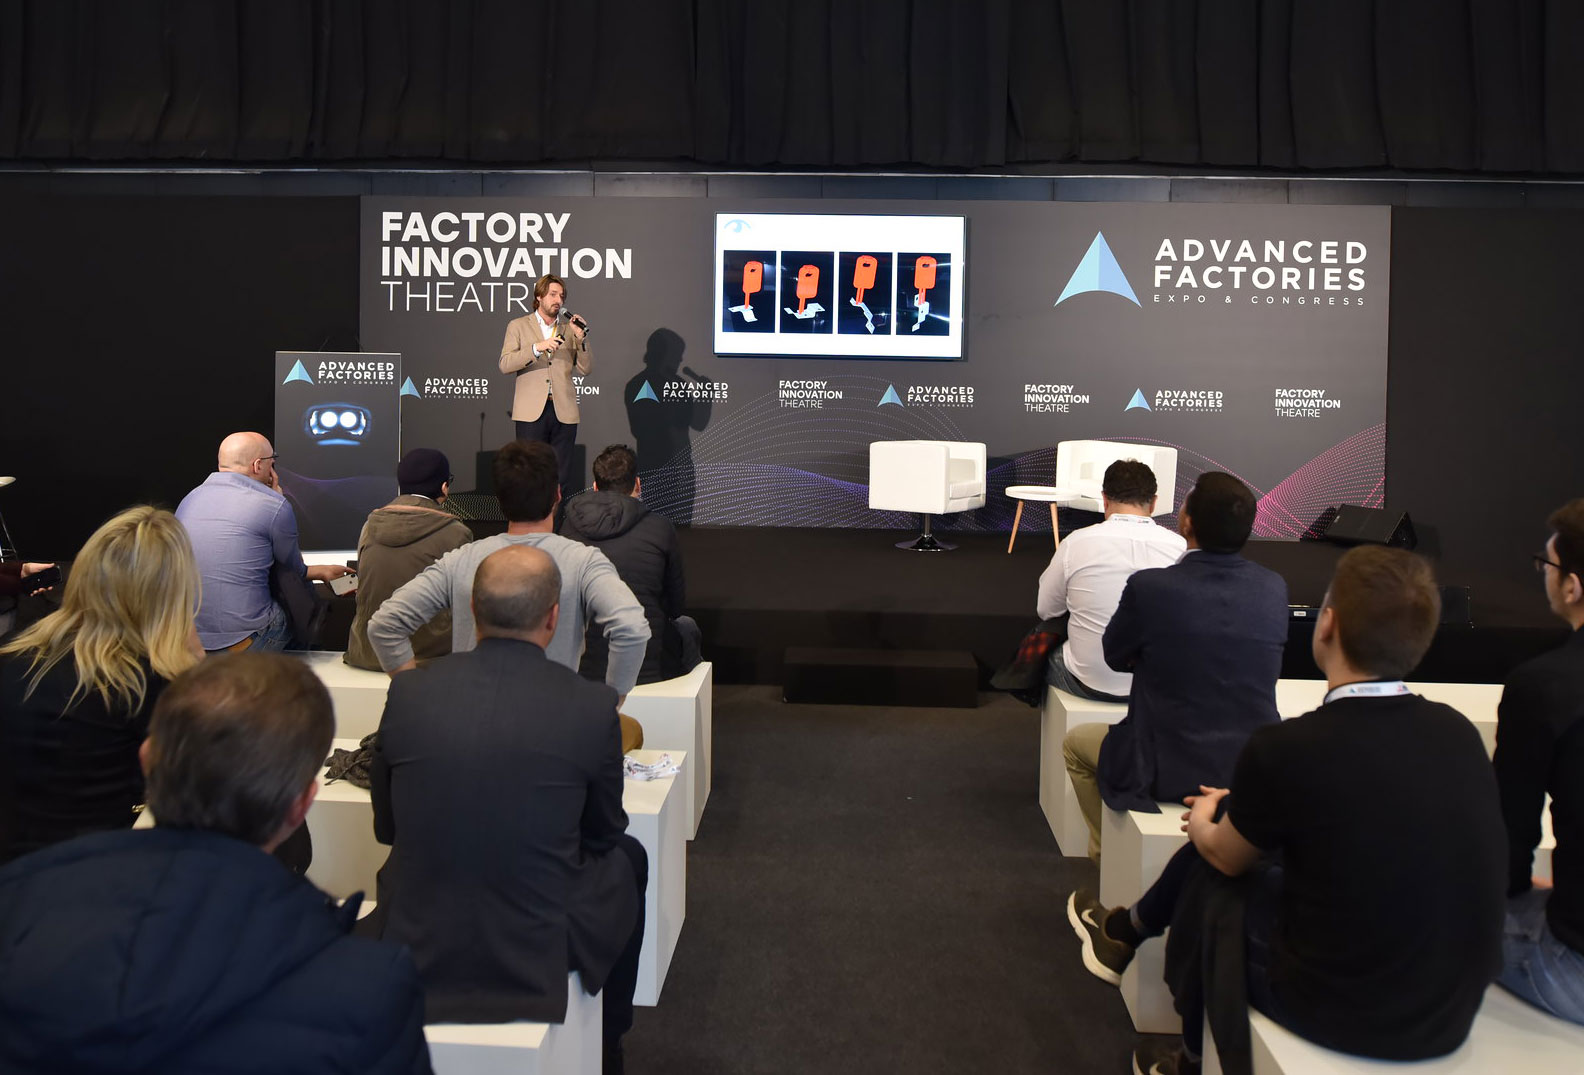 Advanced Factories promotes technology transfer between startups and industrial companies with the Industry Startup Forum